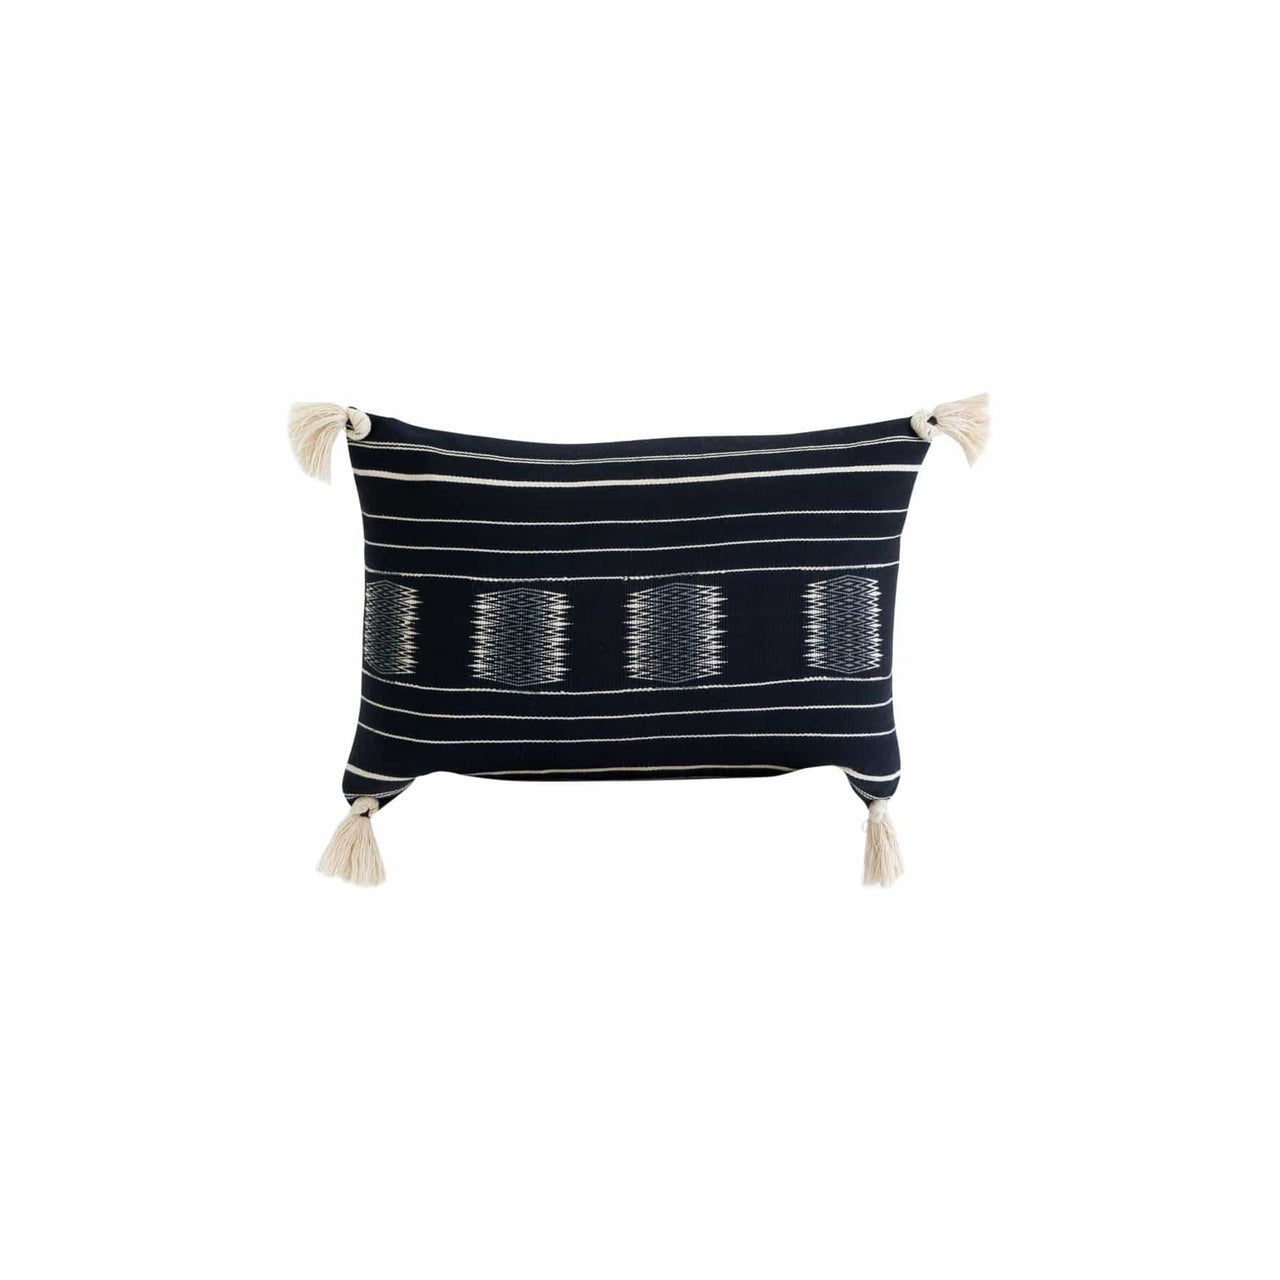 KARU Cushions & Throws Nagaland Bolster Cushion in Navy